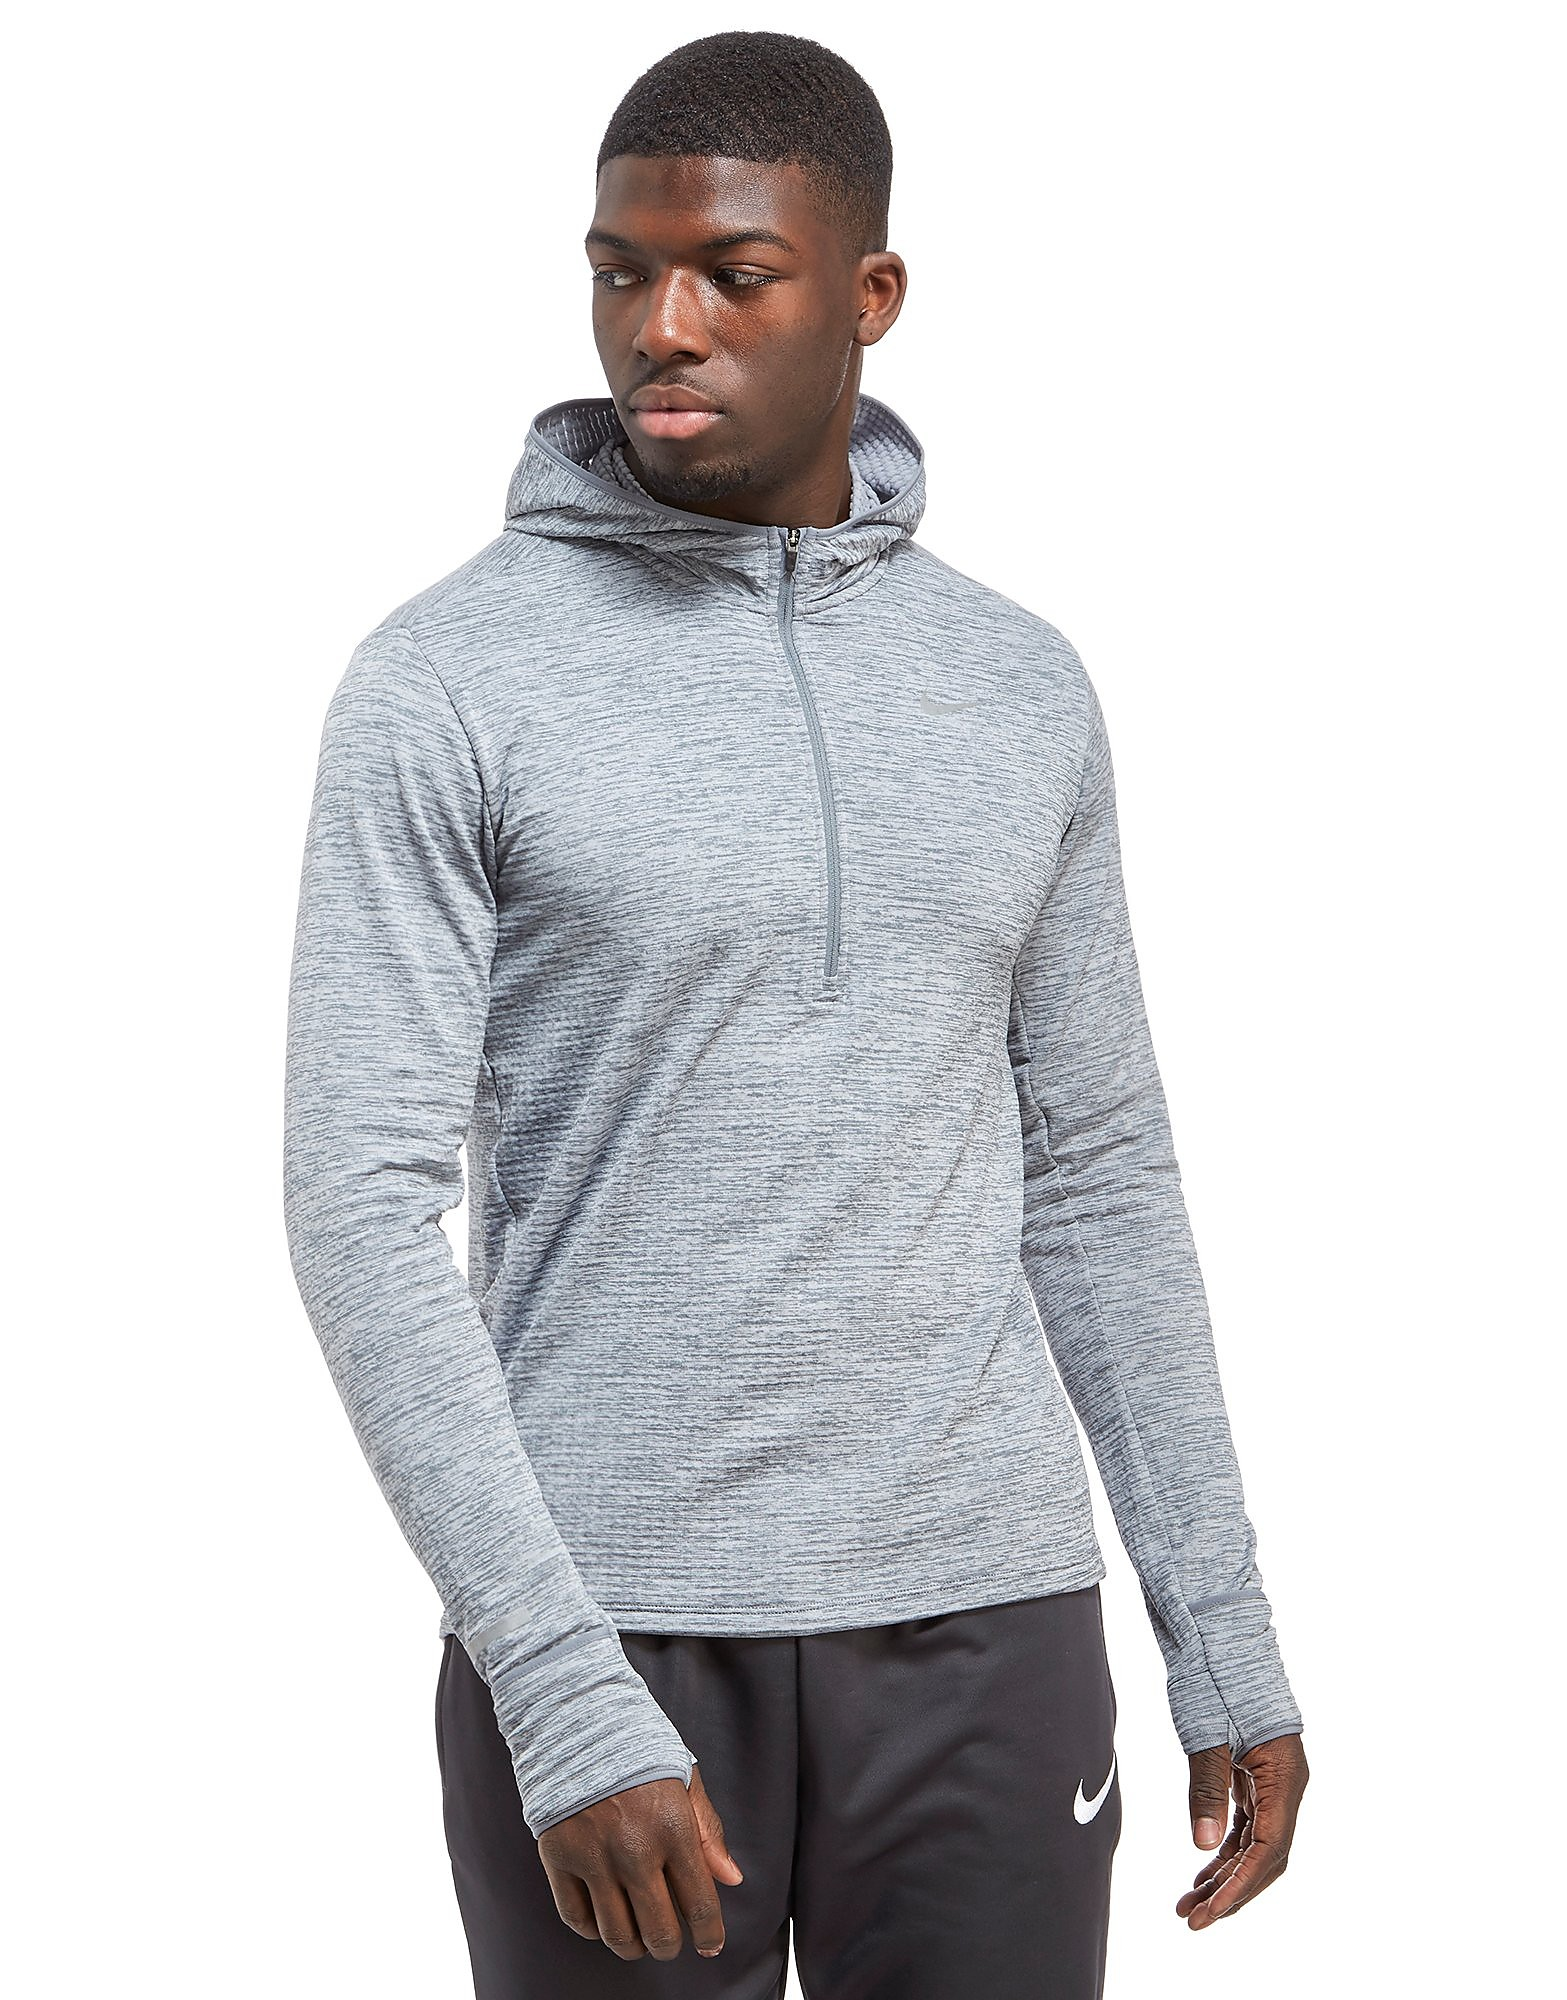 Nike Therma Sphere Element Hoody